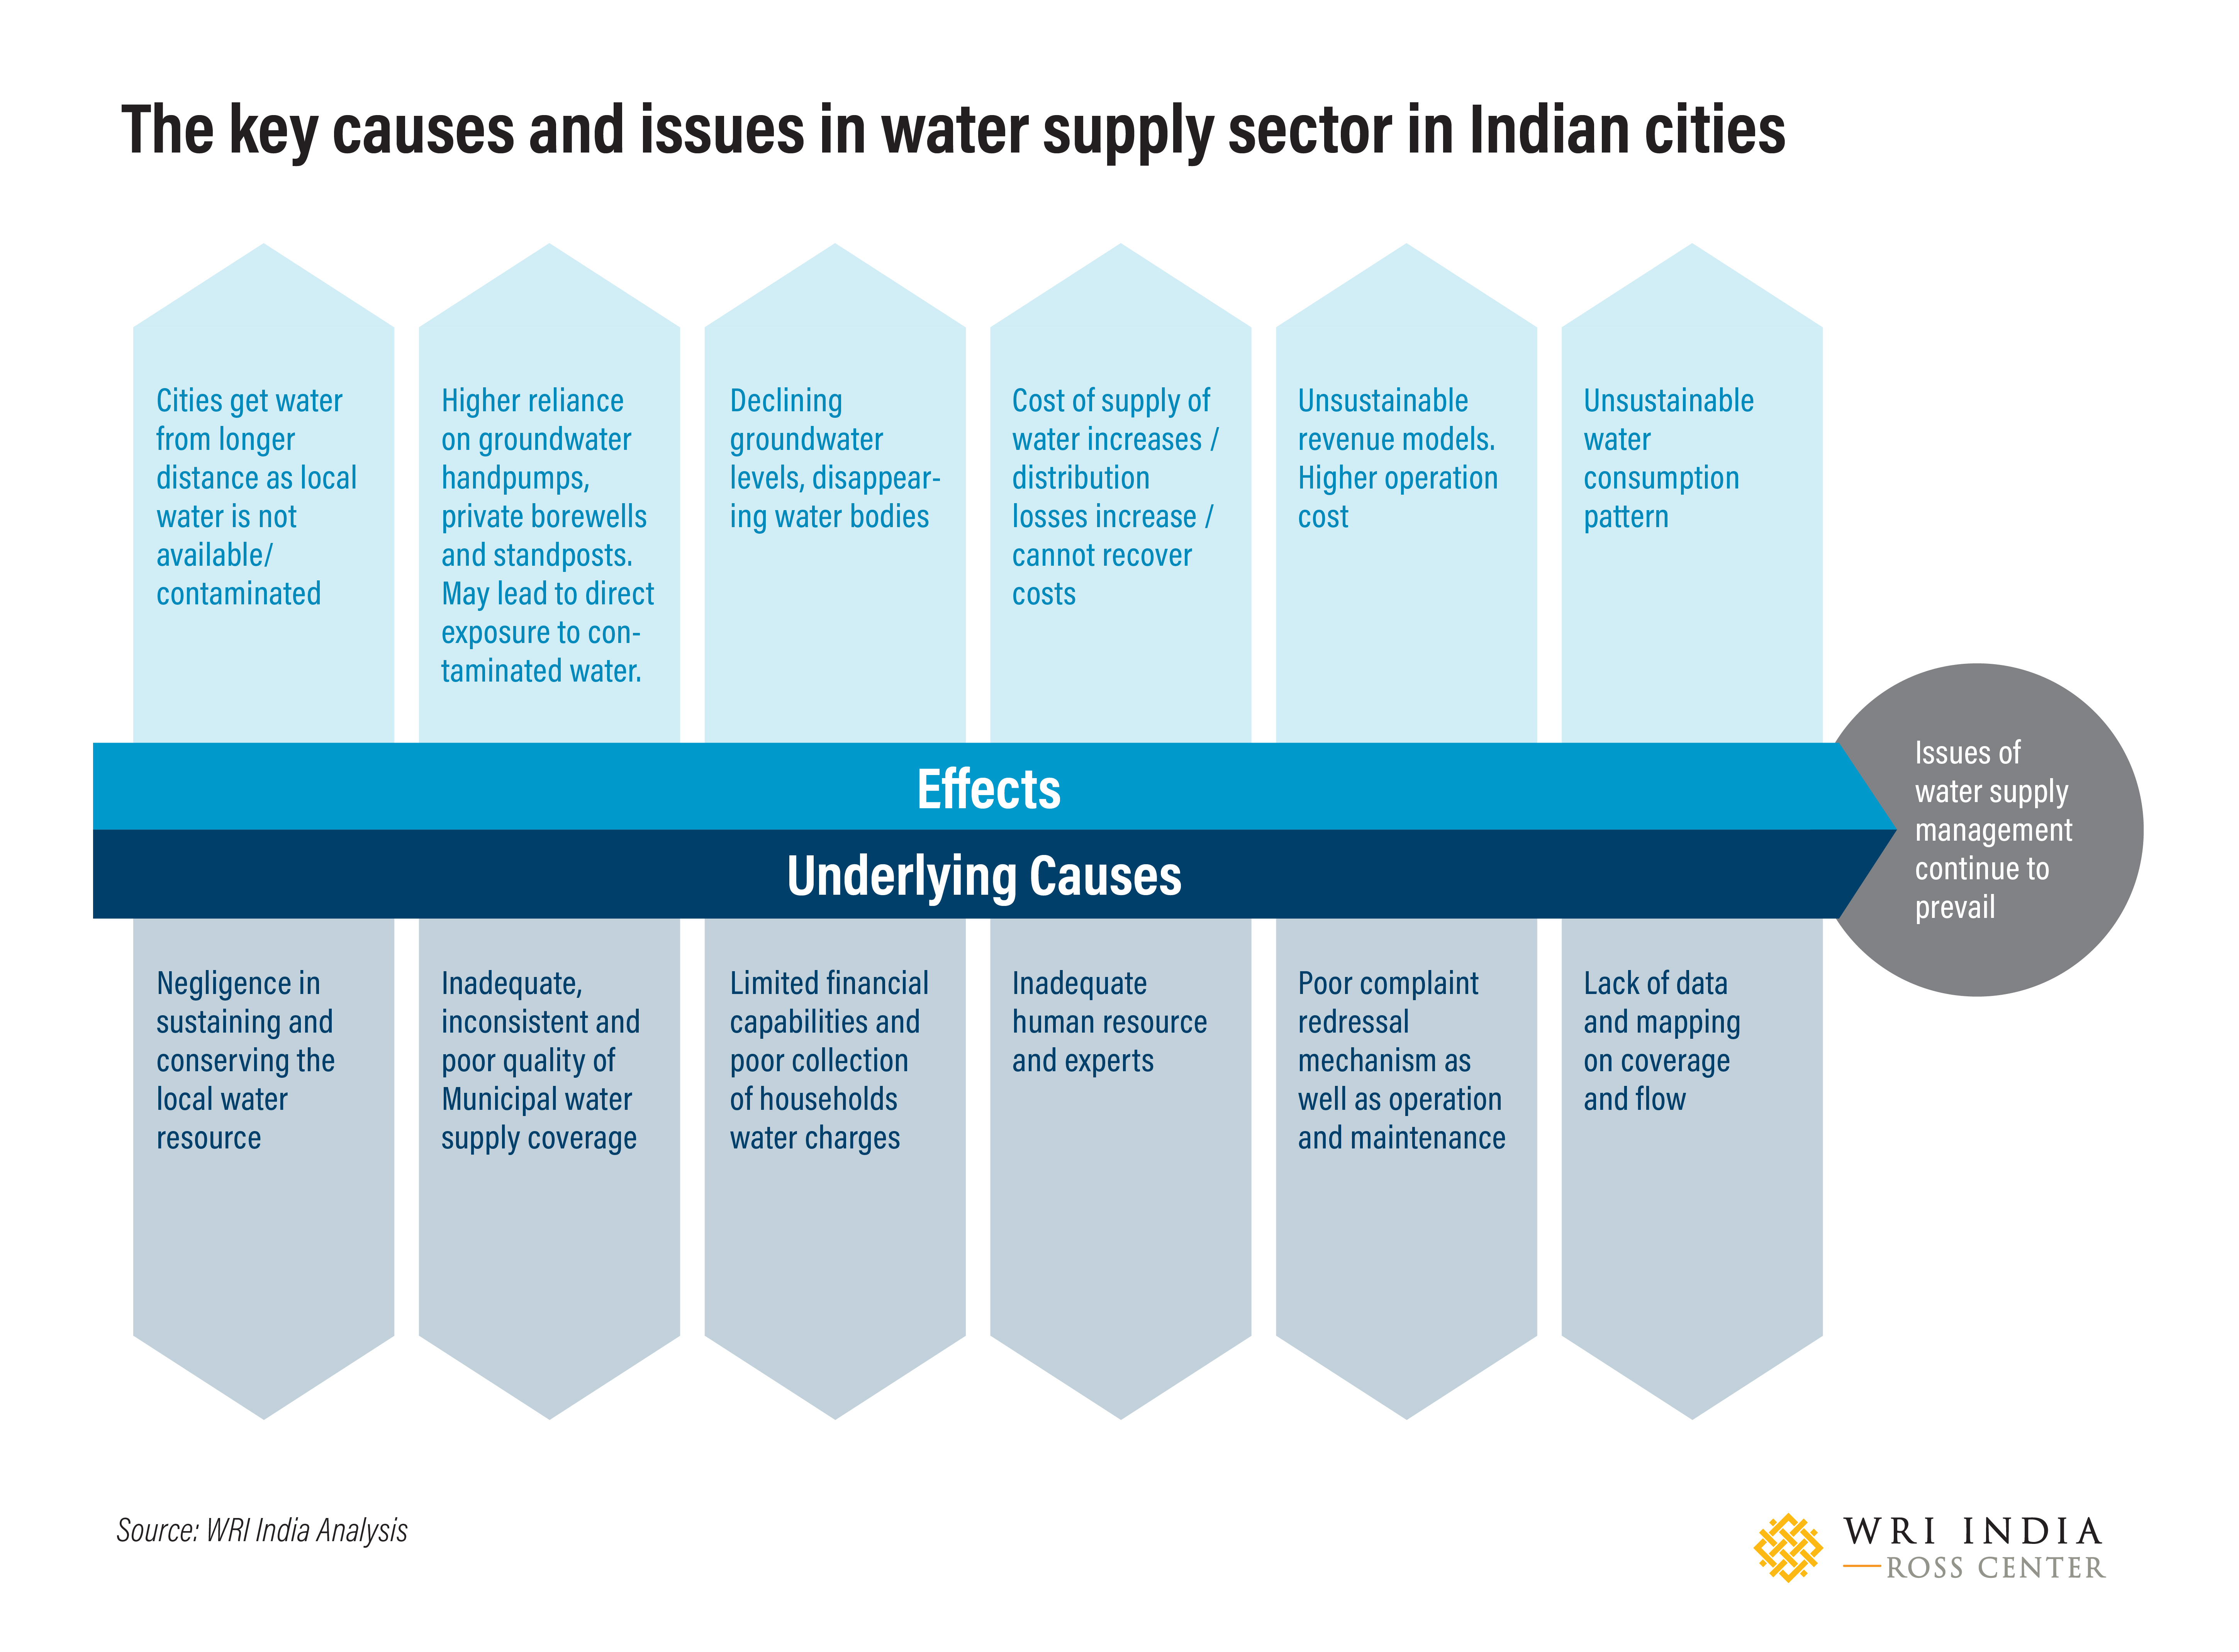 The key causes and issues in water supply sector in Indian cities